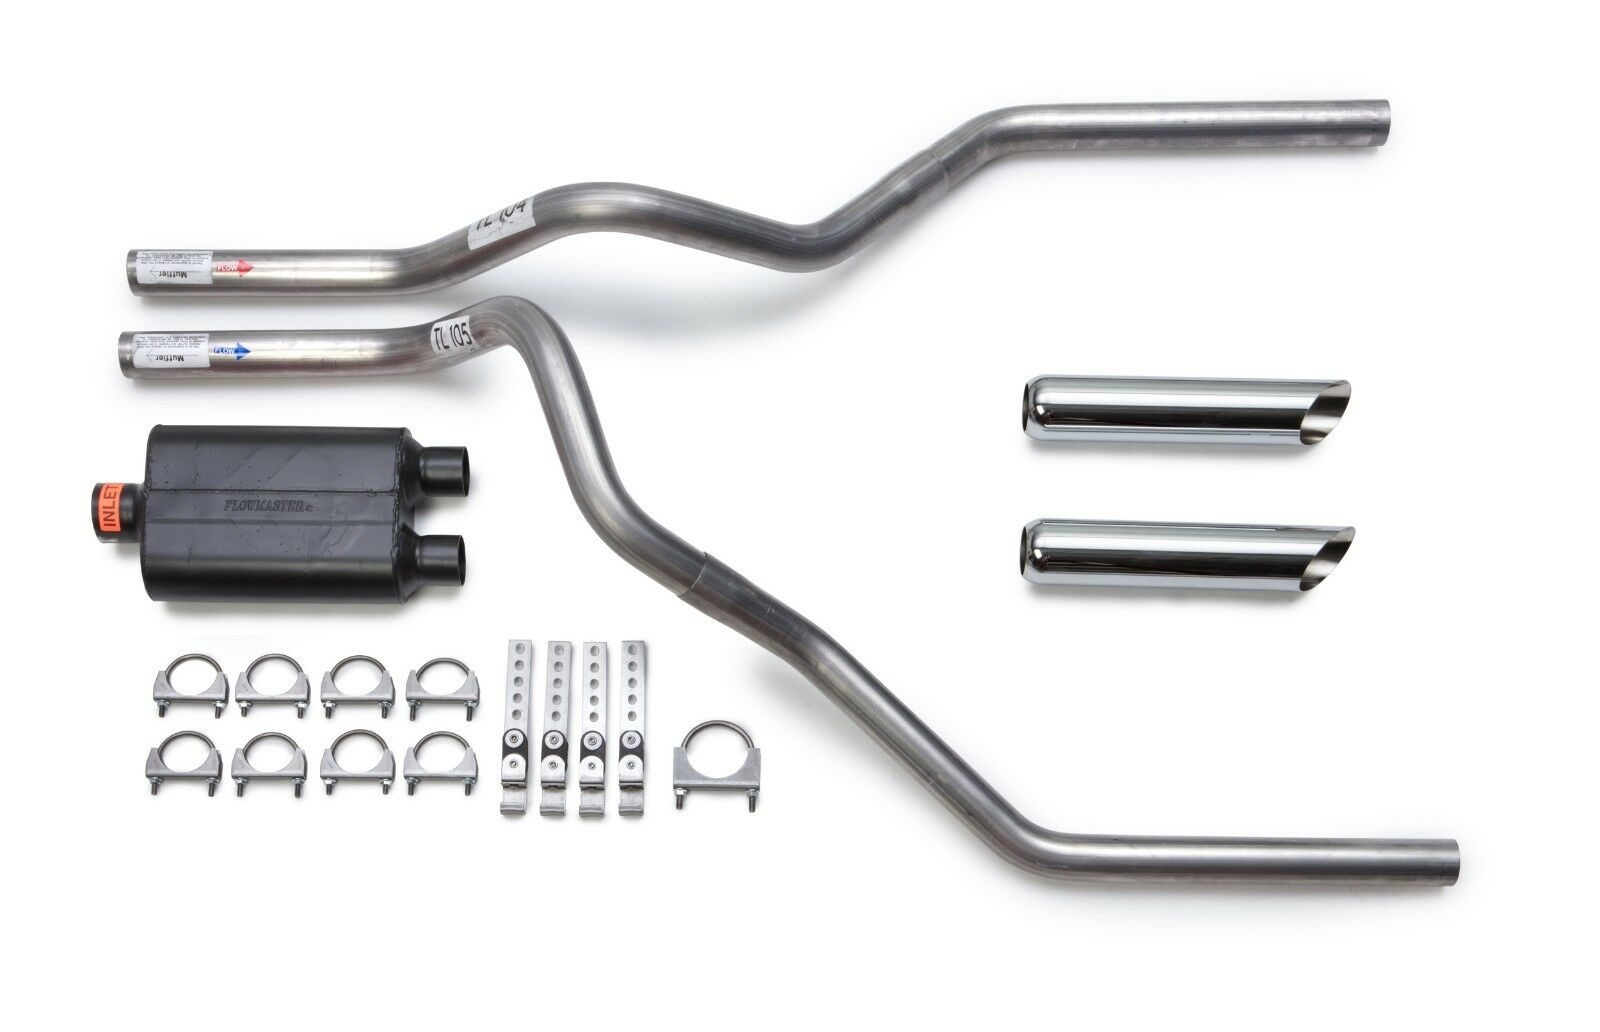 DIY dual exhaust system 2.5 pipe Flowmaster Super 10 RC Tip Truck Exhaust Kits